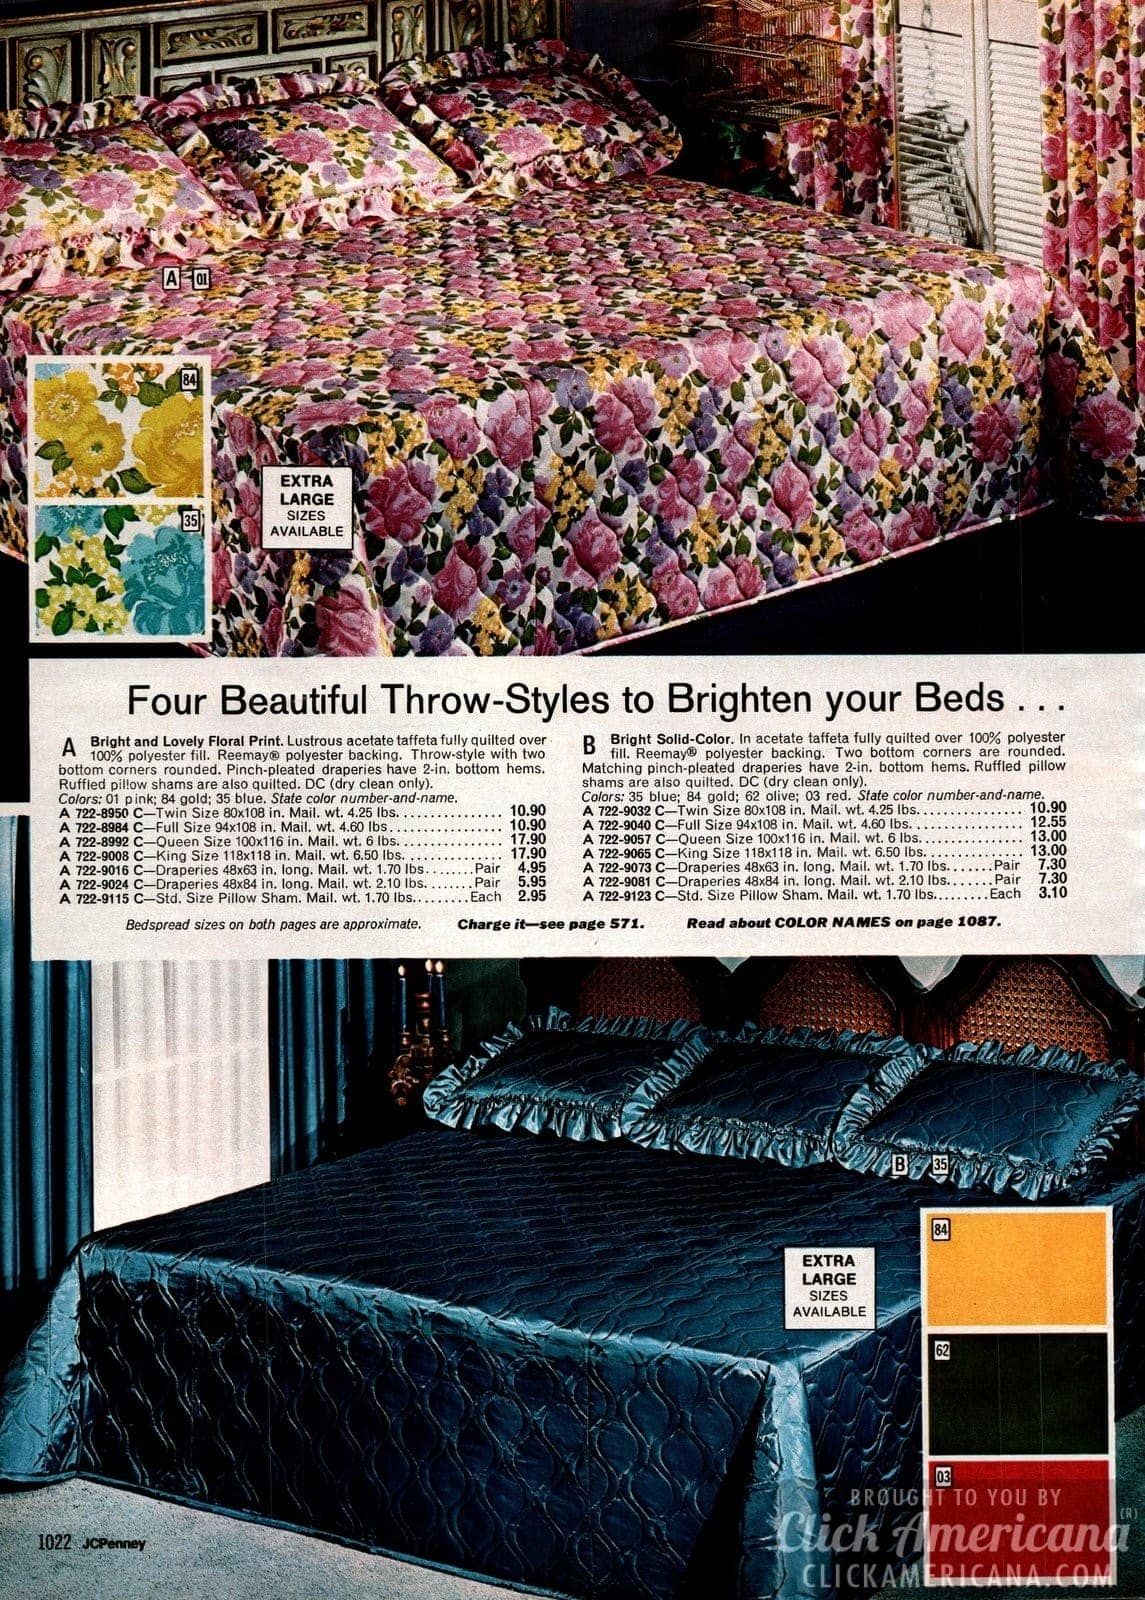 Shiny bedspreads with lovely flower print and acetate satin solid colors